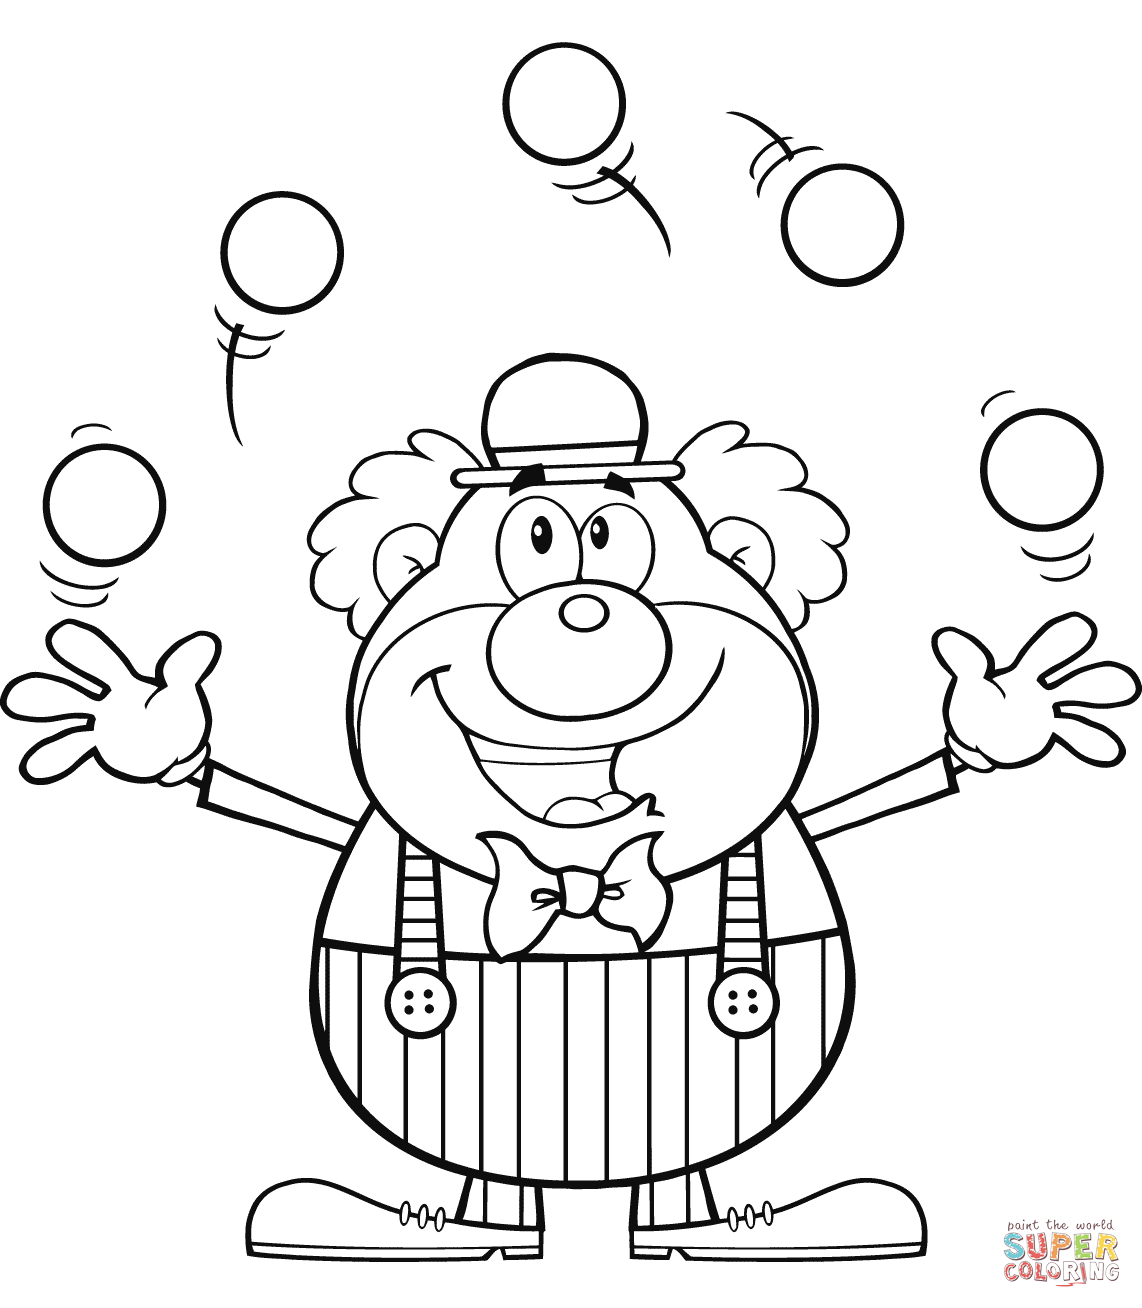 Clown Juggling Balls Coloring Page Free Printable Coloring Pages Zoo Coloring Pages Coloring Pages Cute Clown